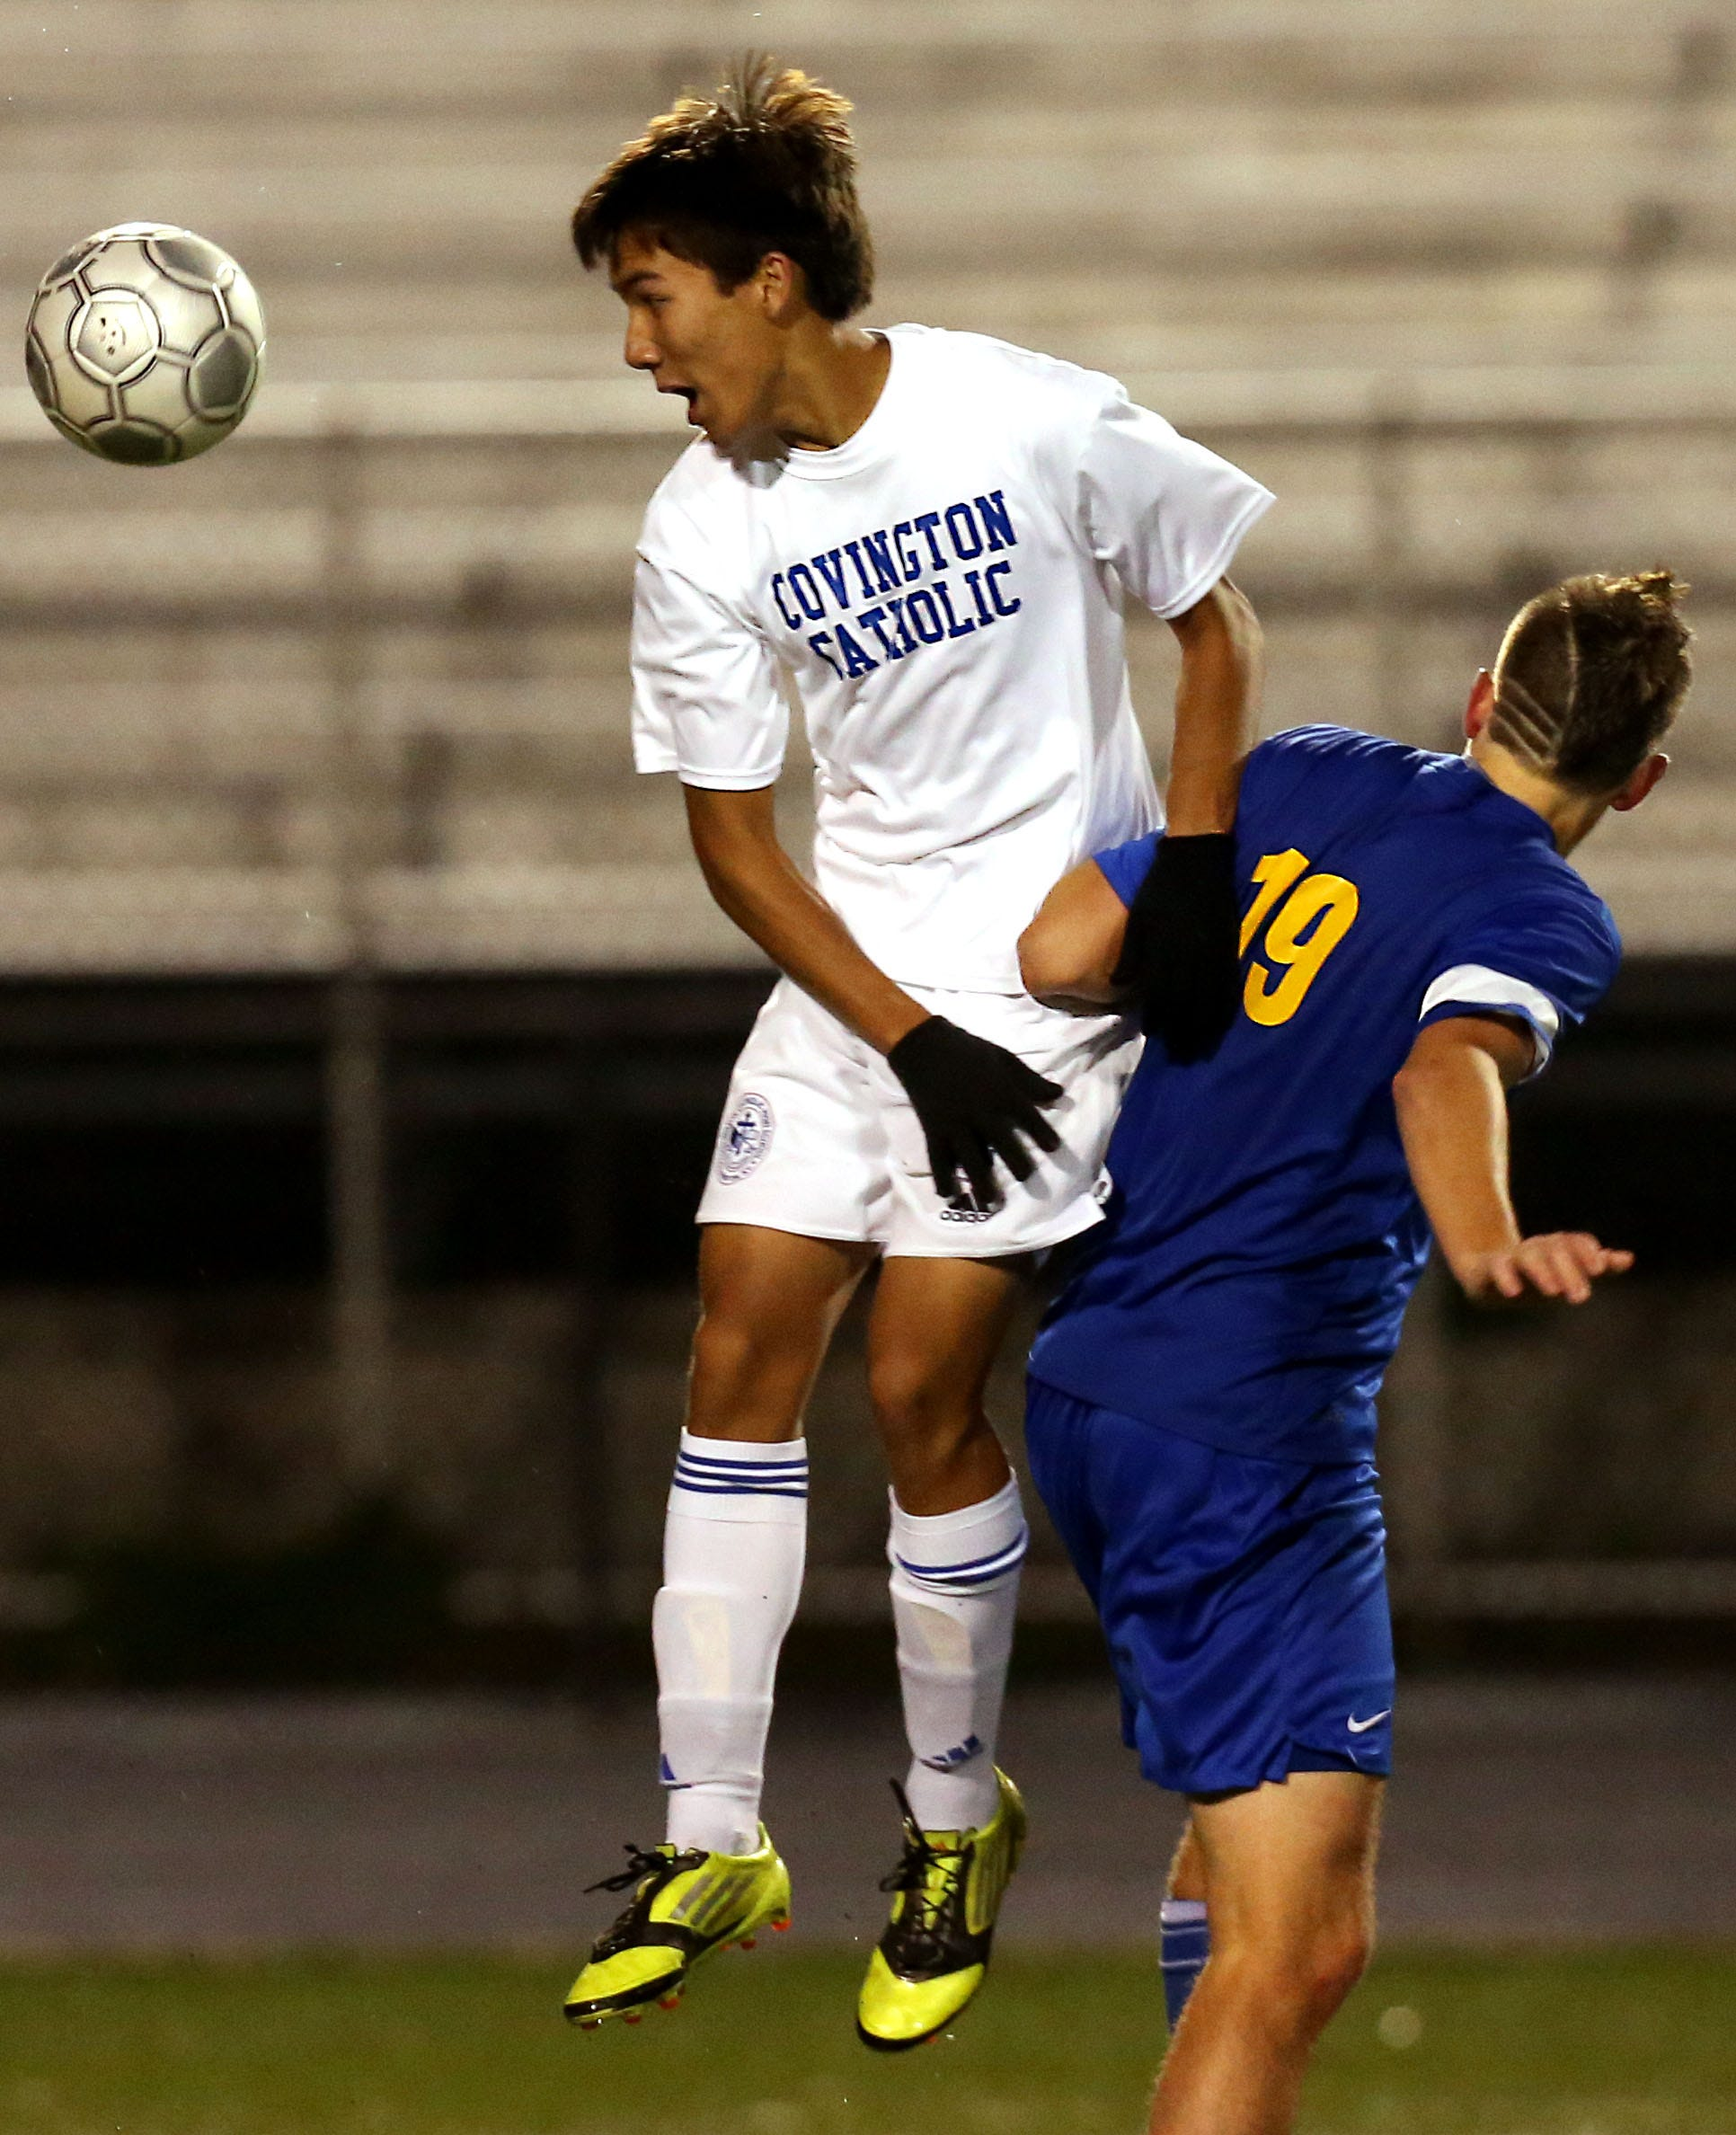 Covington Catholic's Joe Schuh (4) heads the ball against Newport Central Catholic's Noah Connolly (19) in a soccer game at Ryle High School Oct. 24, 2013. Newport Central Catholic won 1-0 in overtime.